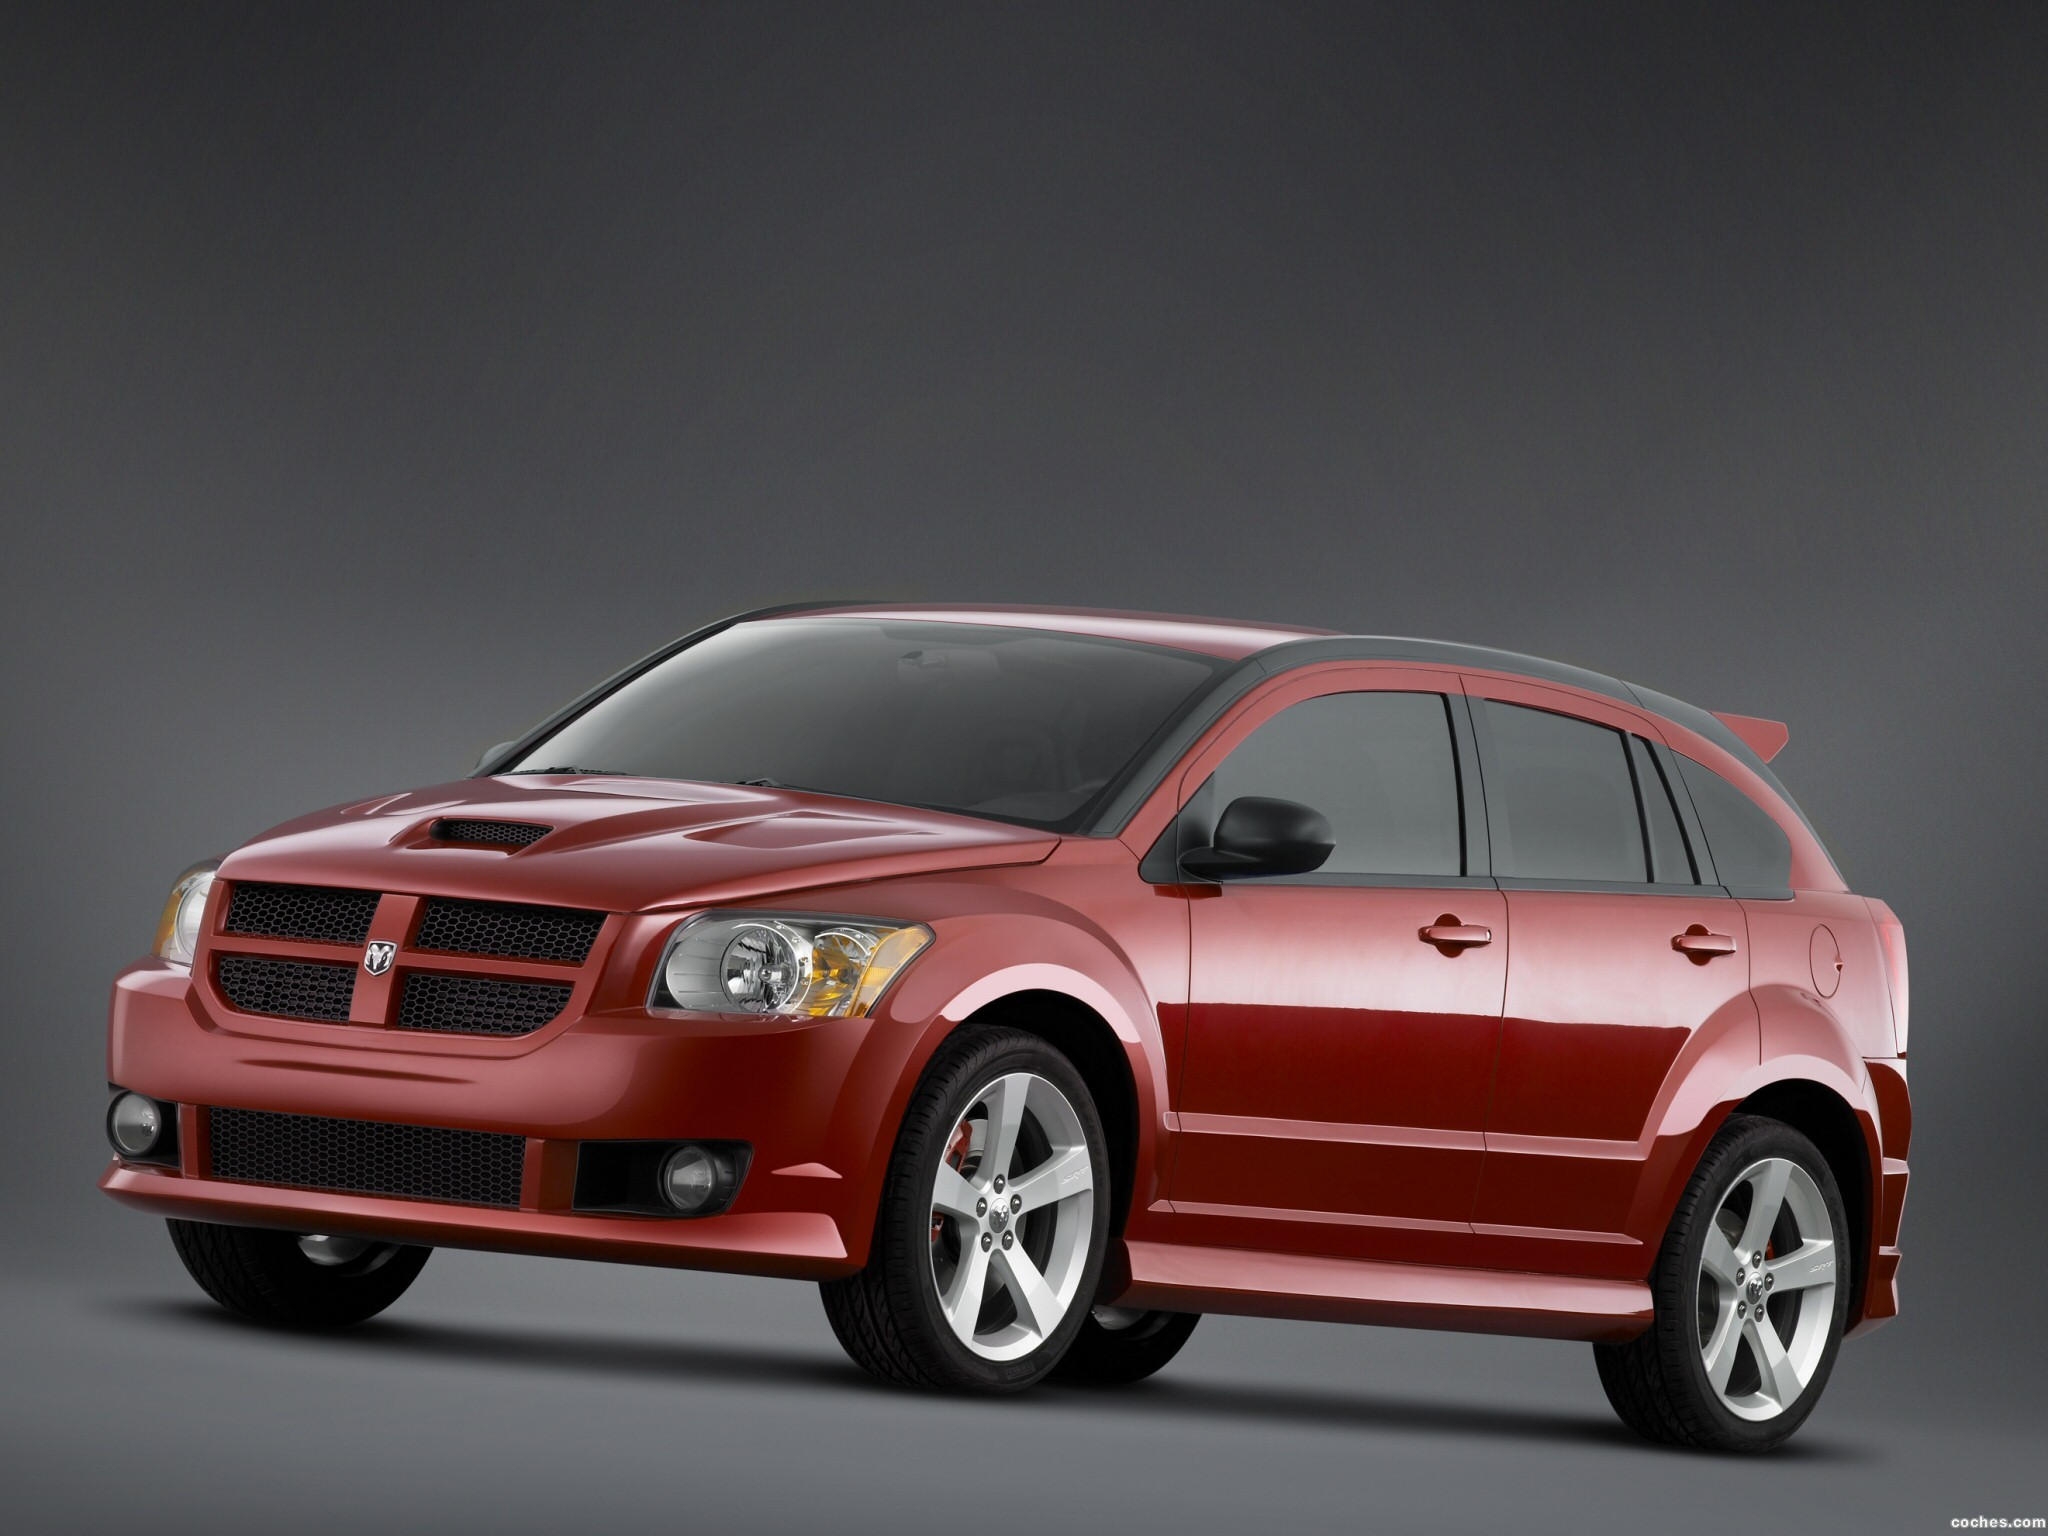 Pics Photos - 2007 Dodge Caliber Srt4: http://funny-pictures.picphotos.net/2007-dodge-caliber-srt4